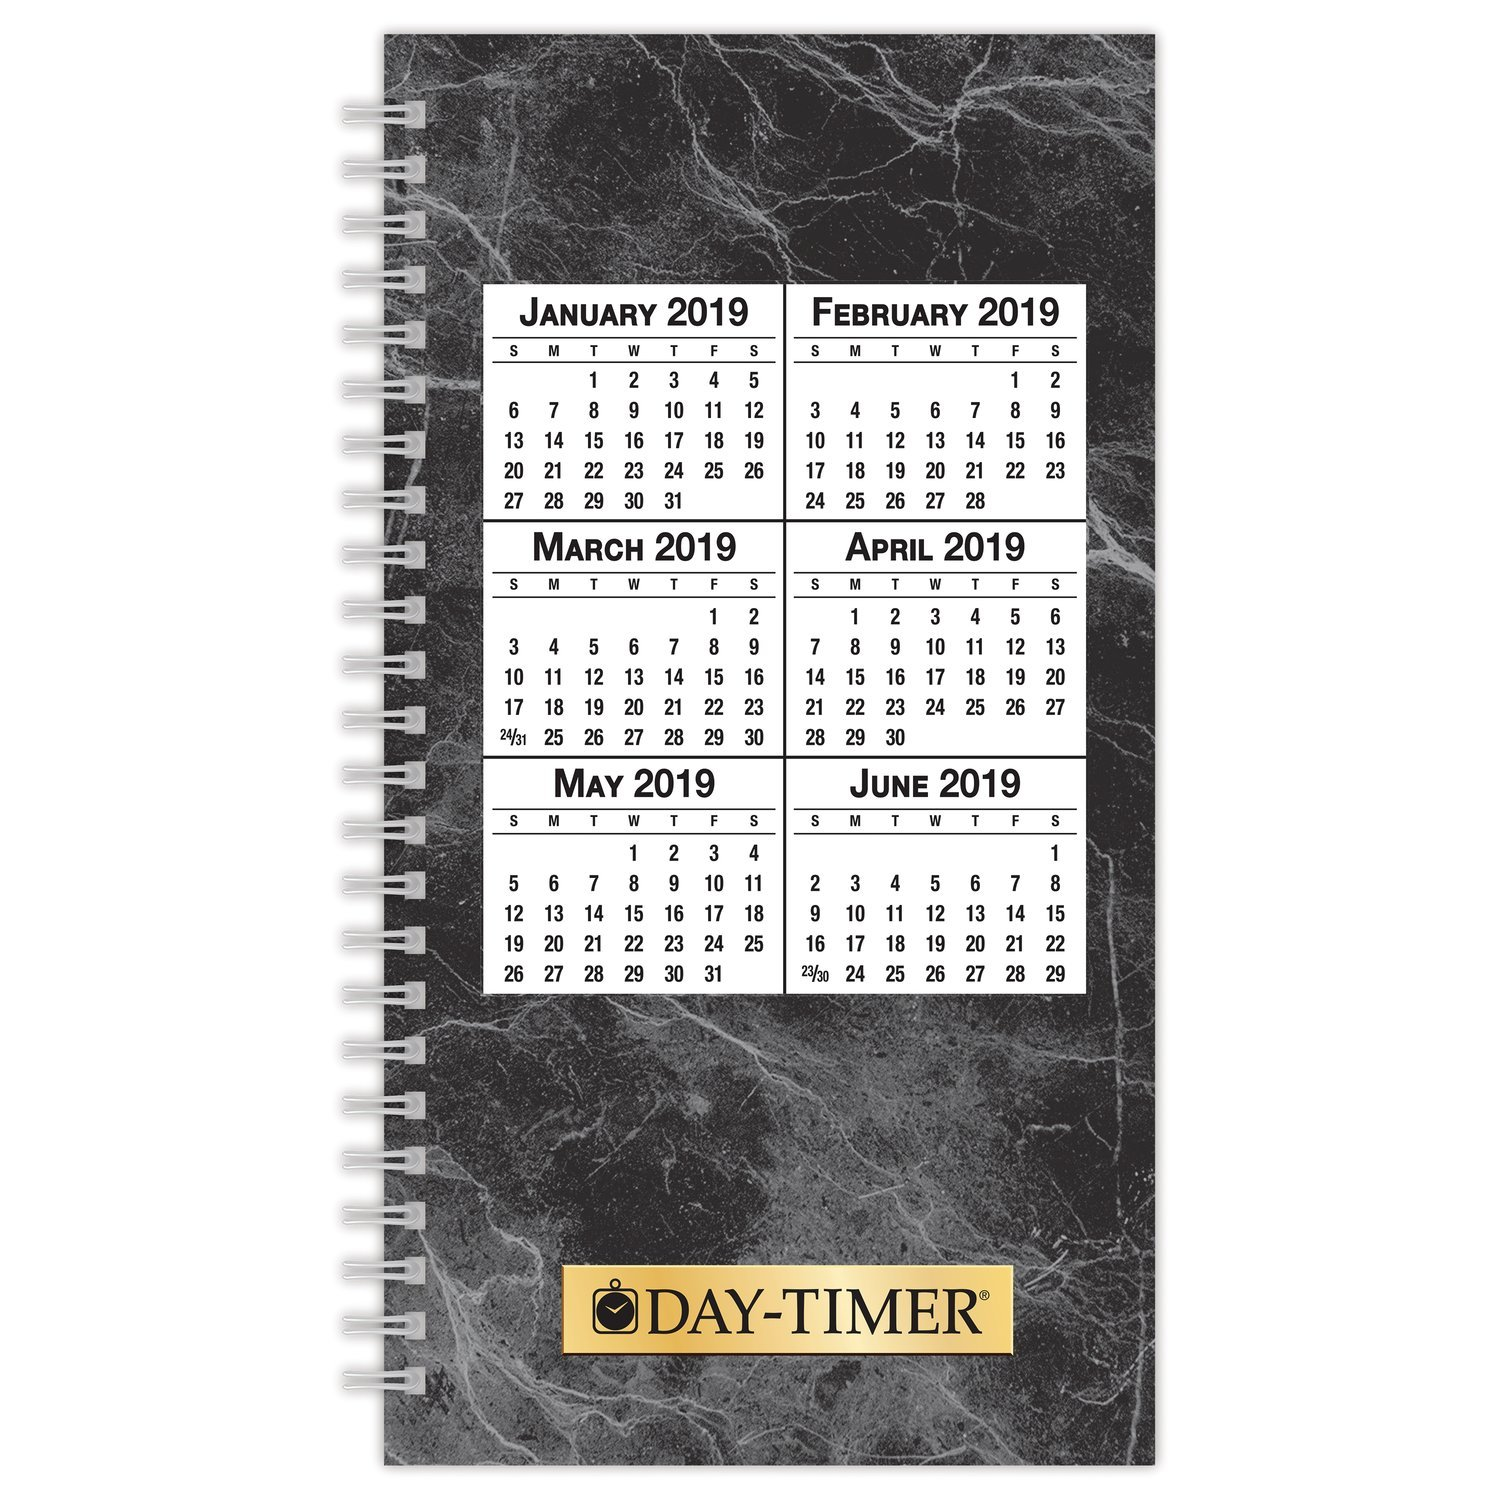 Day-Timer 2019 Weekly Planner Refill, 3-1/2'' x 6-1/2'', Pocket Size 2, Wirebound, Two Pages Per Week (87030)